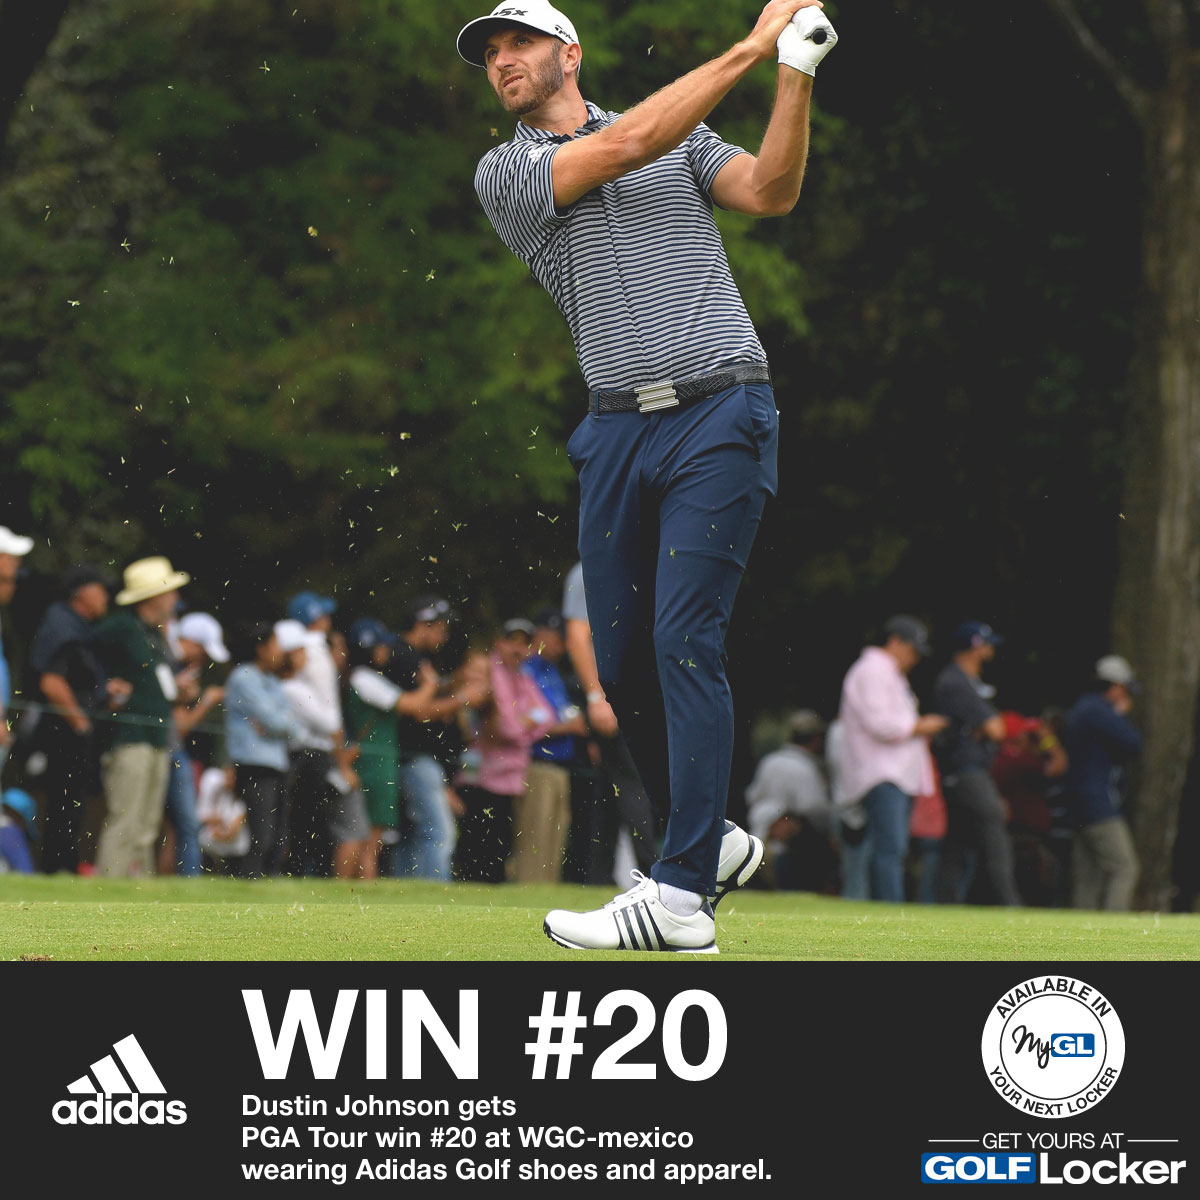 Dustin Johnson Get PGA Tour Win #20 Wearing Adidas Golf Shoes and Apparel